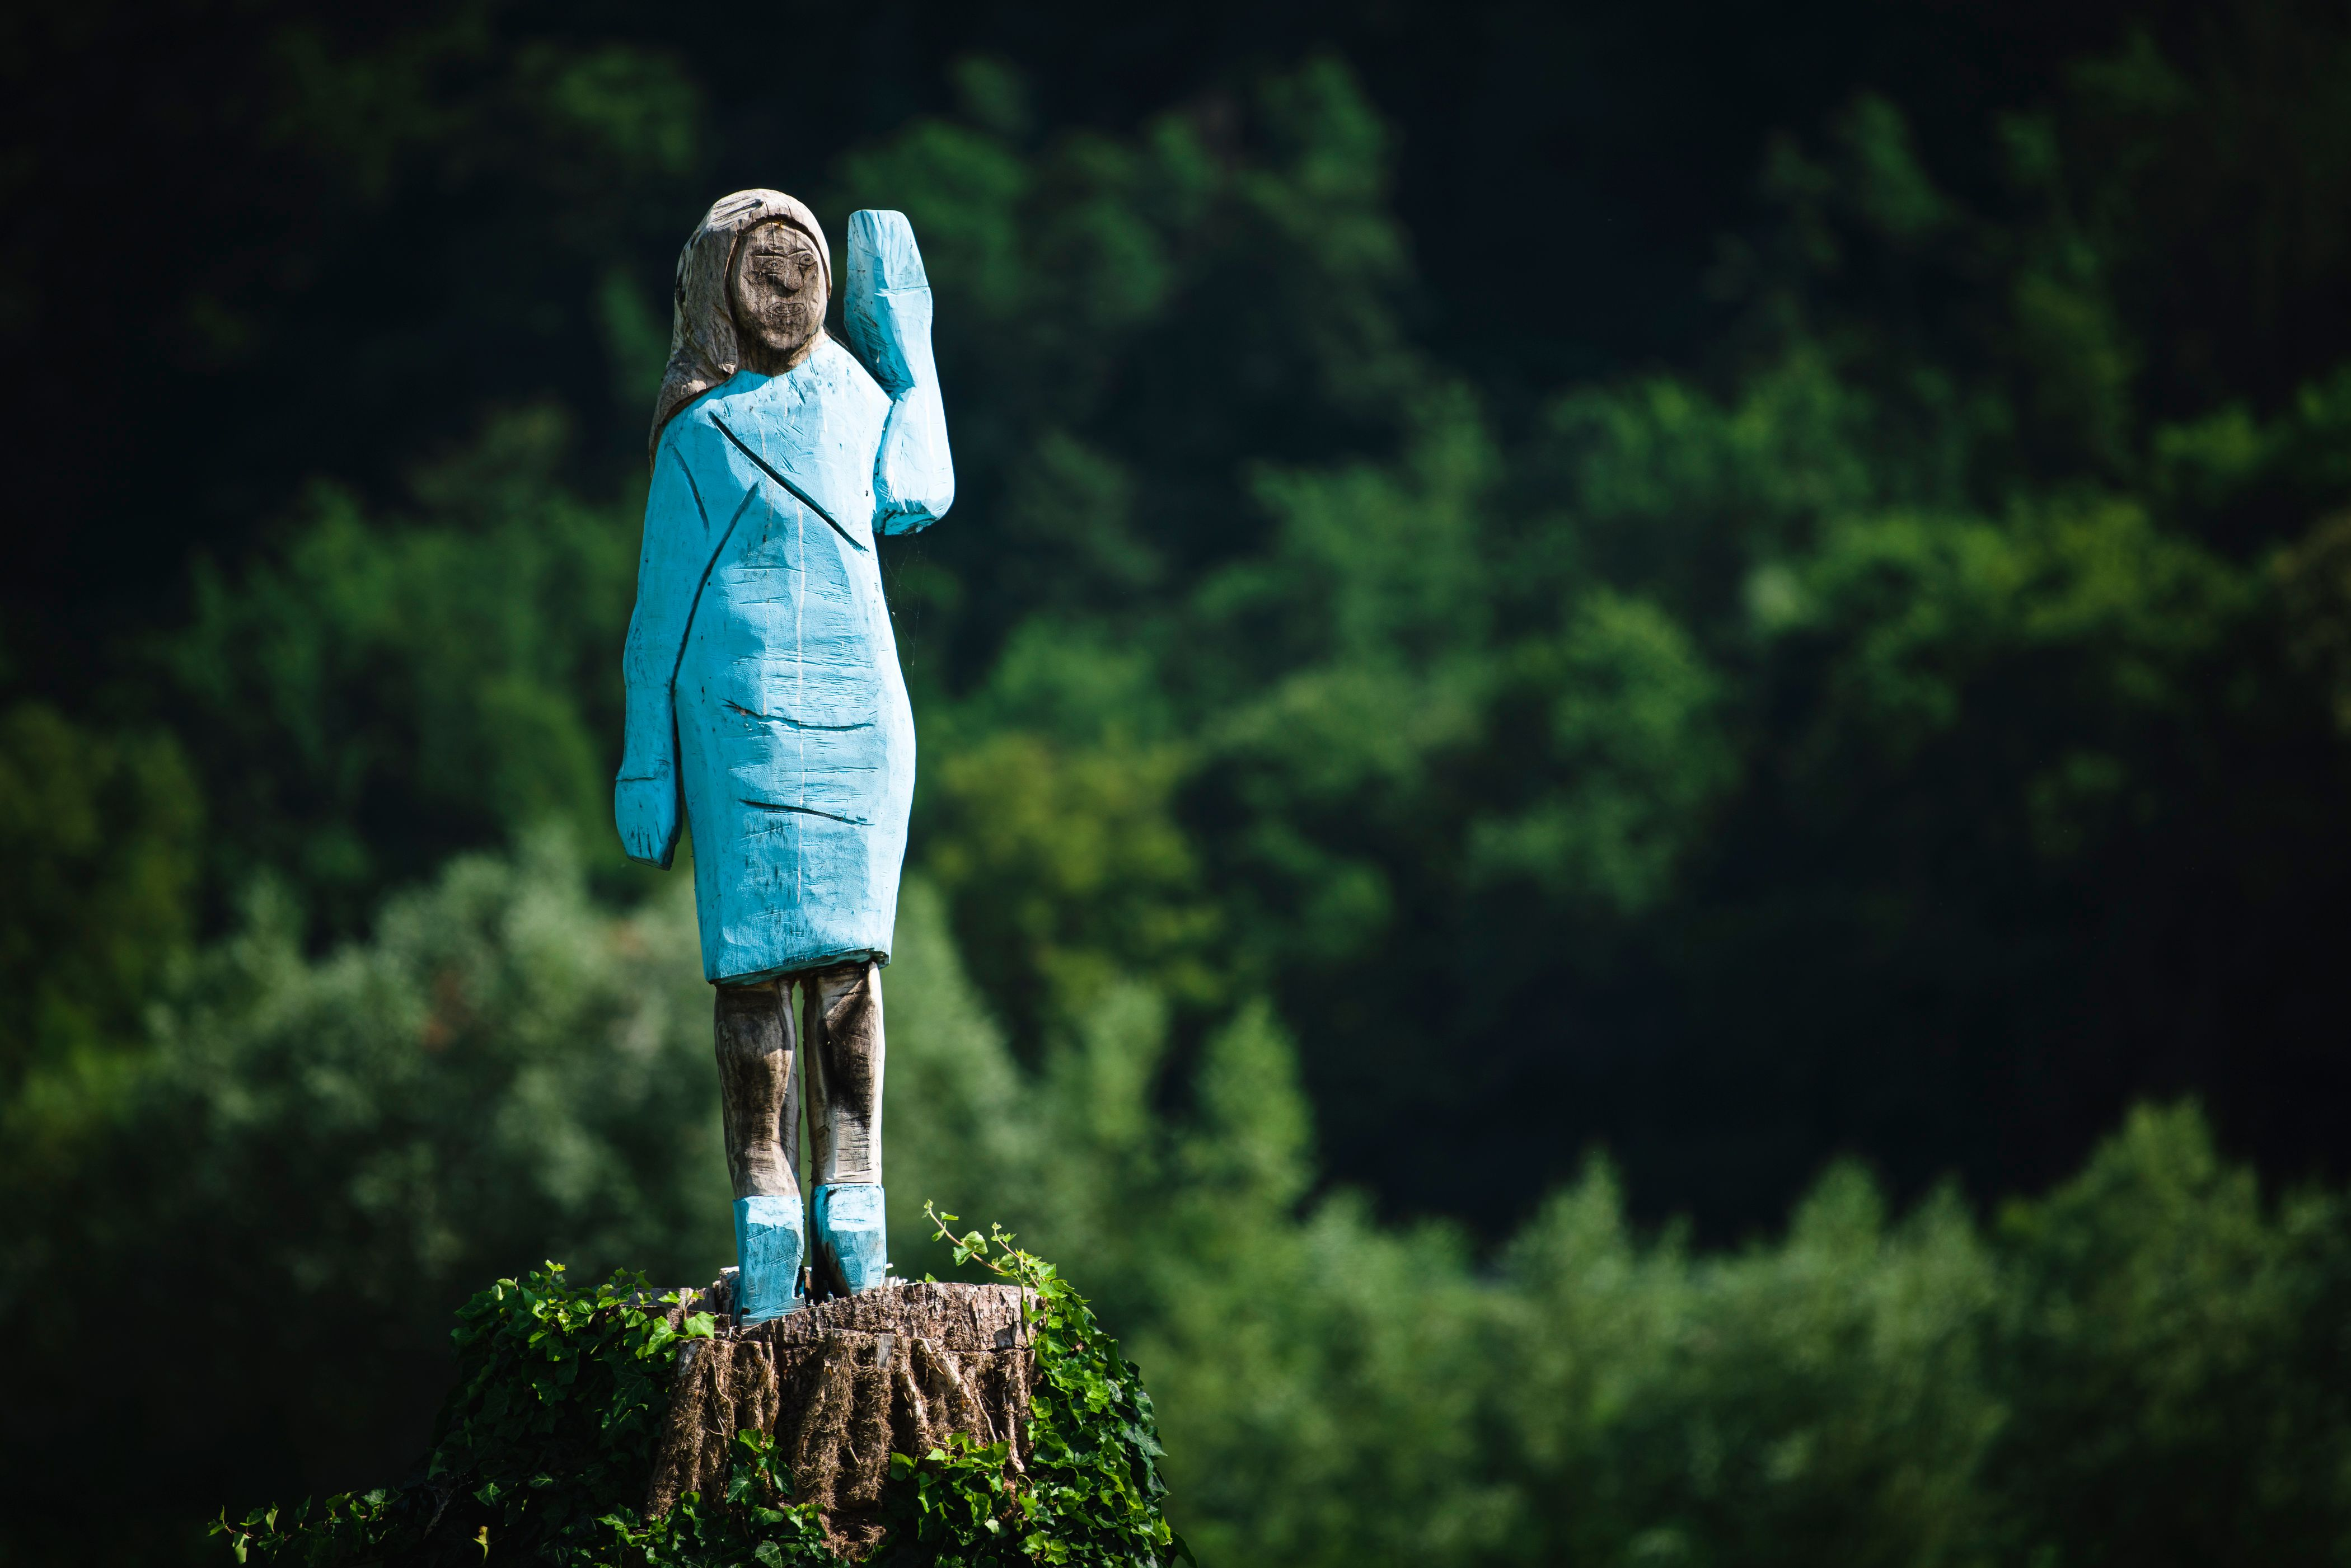 A picture taken on July 5, 2019 shows what conceptual artist Ales 'Maxi' Zupevc claims is the first ever monument of Melania Trump, set in the fields near town of Sevnica, the First Lady's hometown.